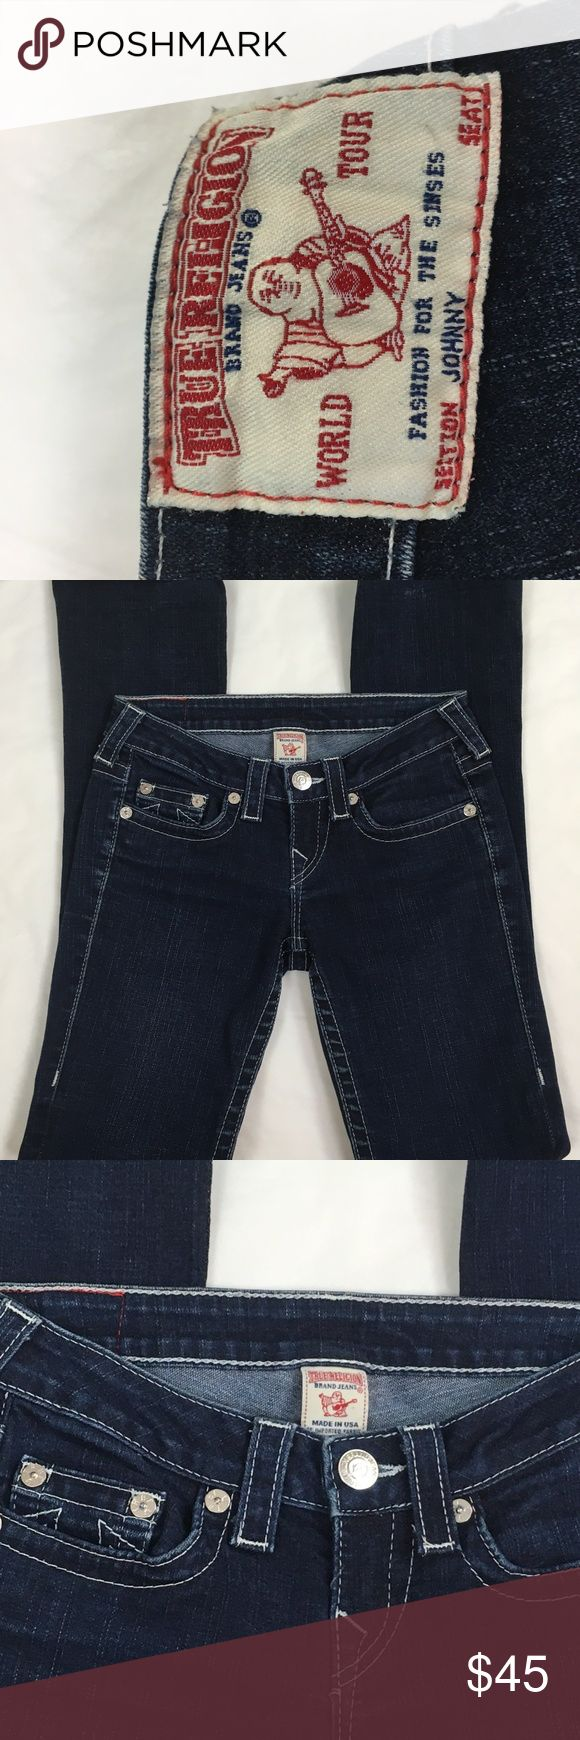 True-Religion-Section-Johnny-Dark Wash Size 26 Item: True Religion Section Johnny Seat.   Size: Women's 26  Style: Straight  Approximate Flat Lay Measurements:  Waist: 28 in.  Inseam: 32 in.  Outseam: 40 in  Front Rise: 7 in.  Leg opening: 14 in.  Please measurement your favorite pair of jeans to ensure proper fit. True Religion Jeans Straight Leg